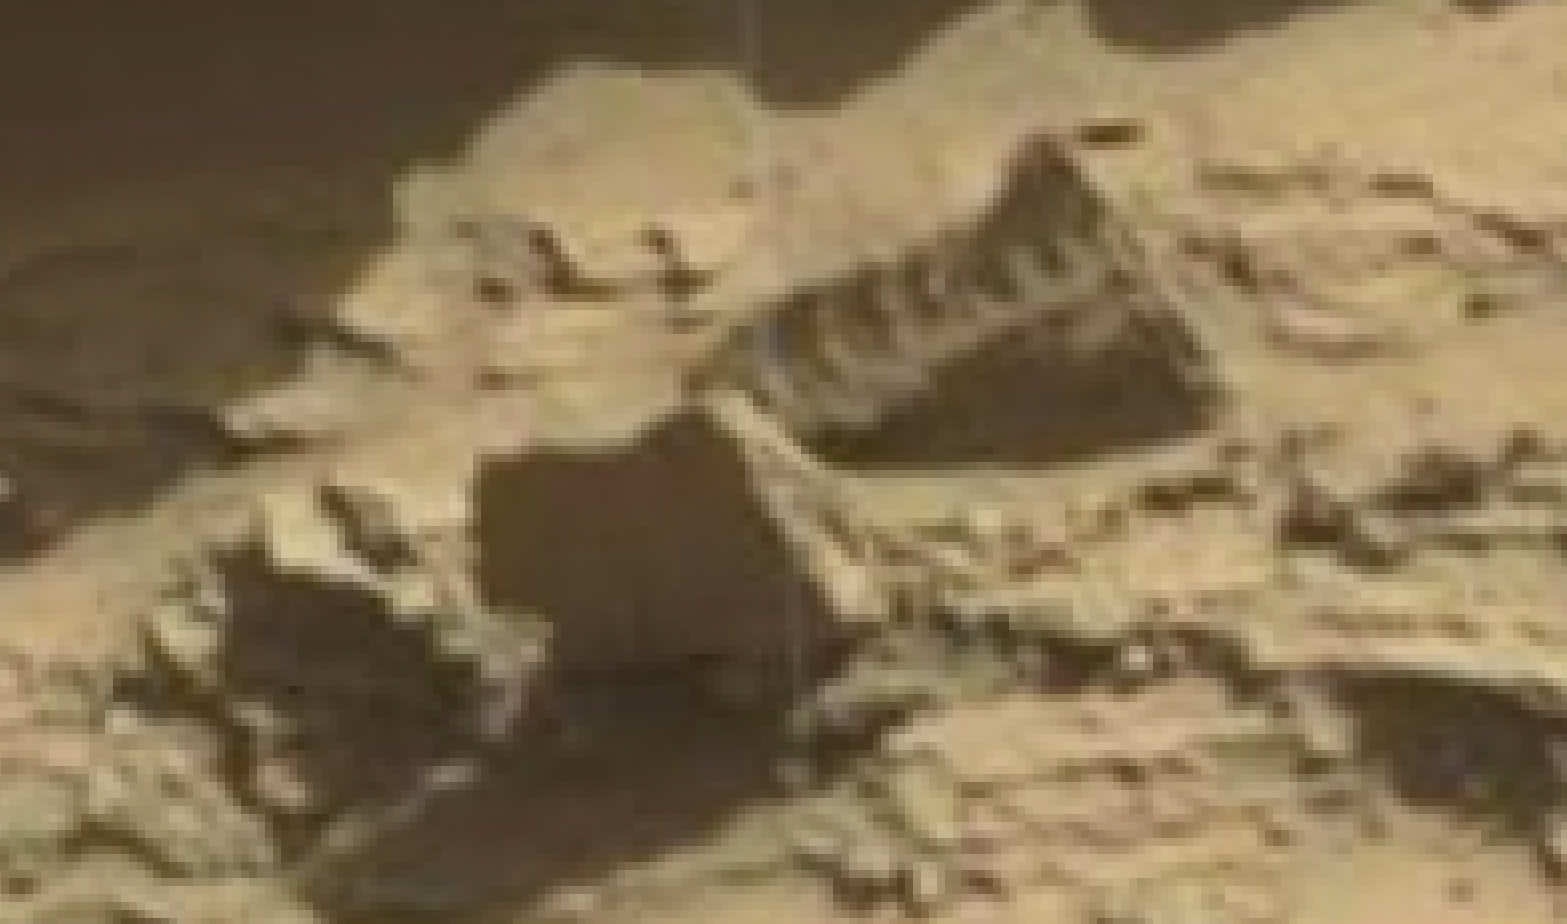 mars sol 1298 anomaly-artifacts 7 was life on mars